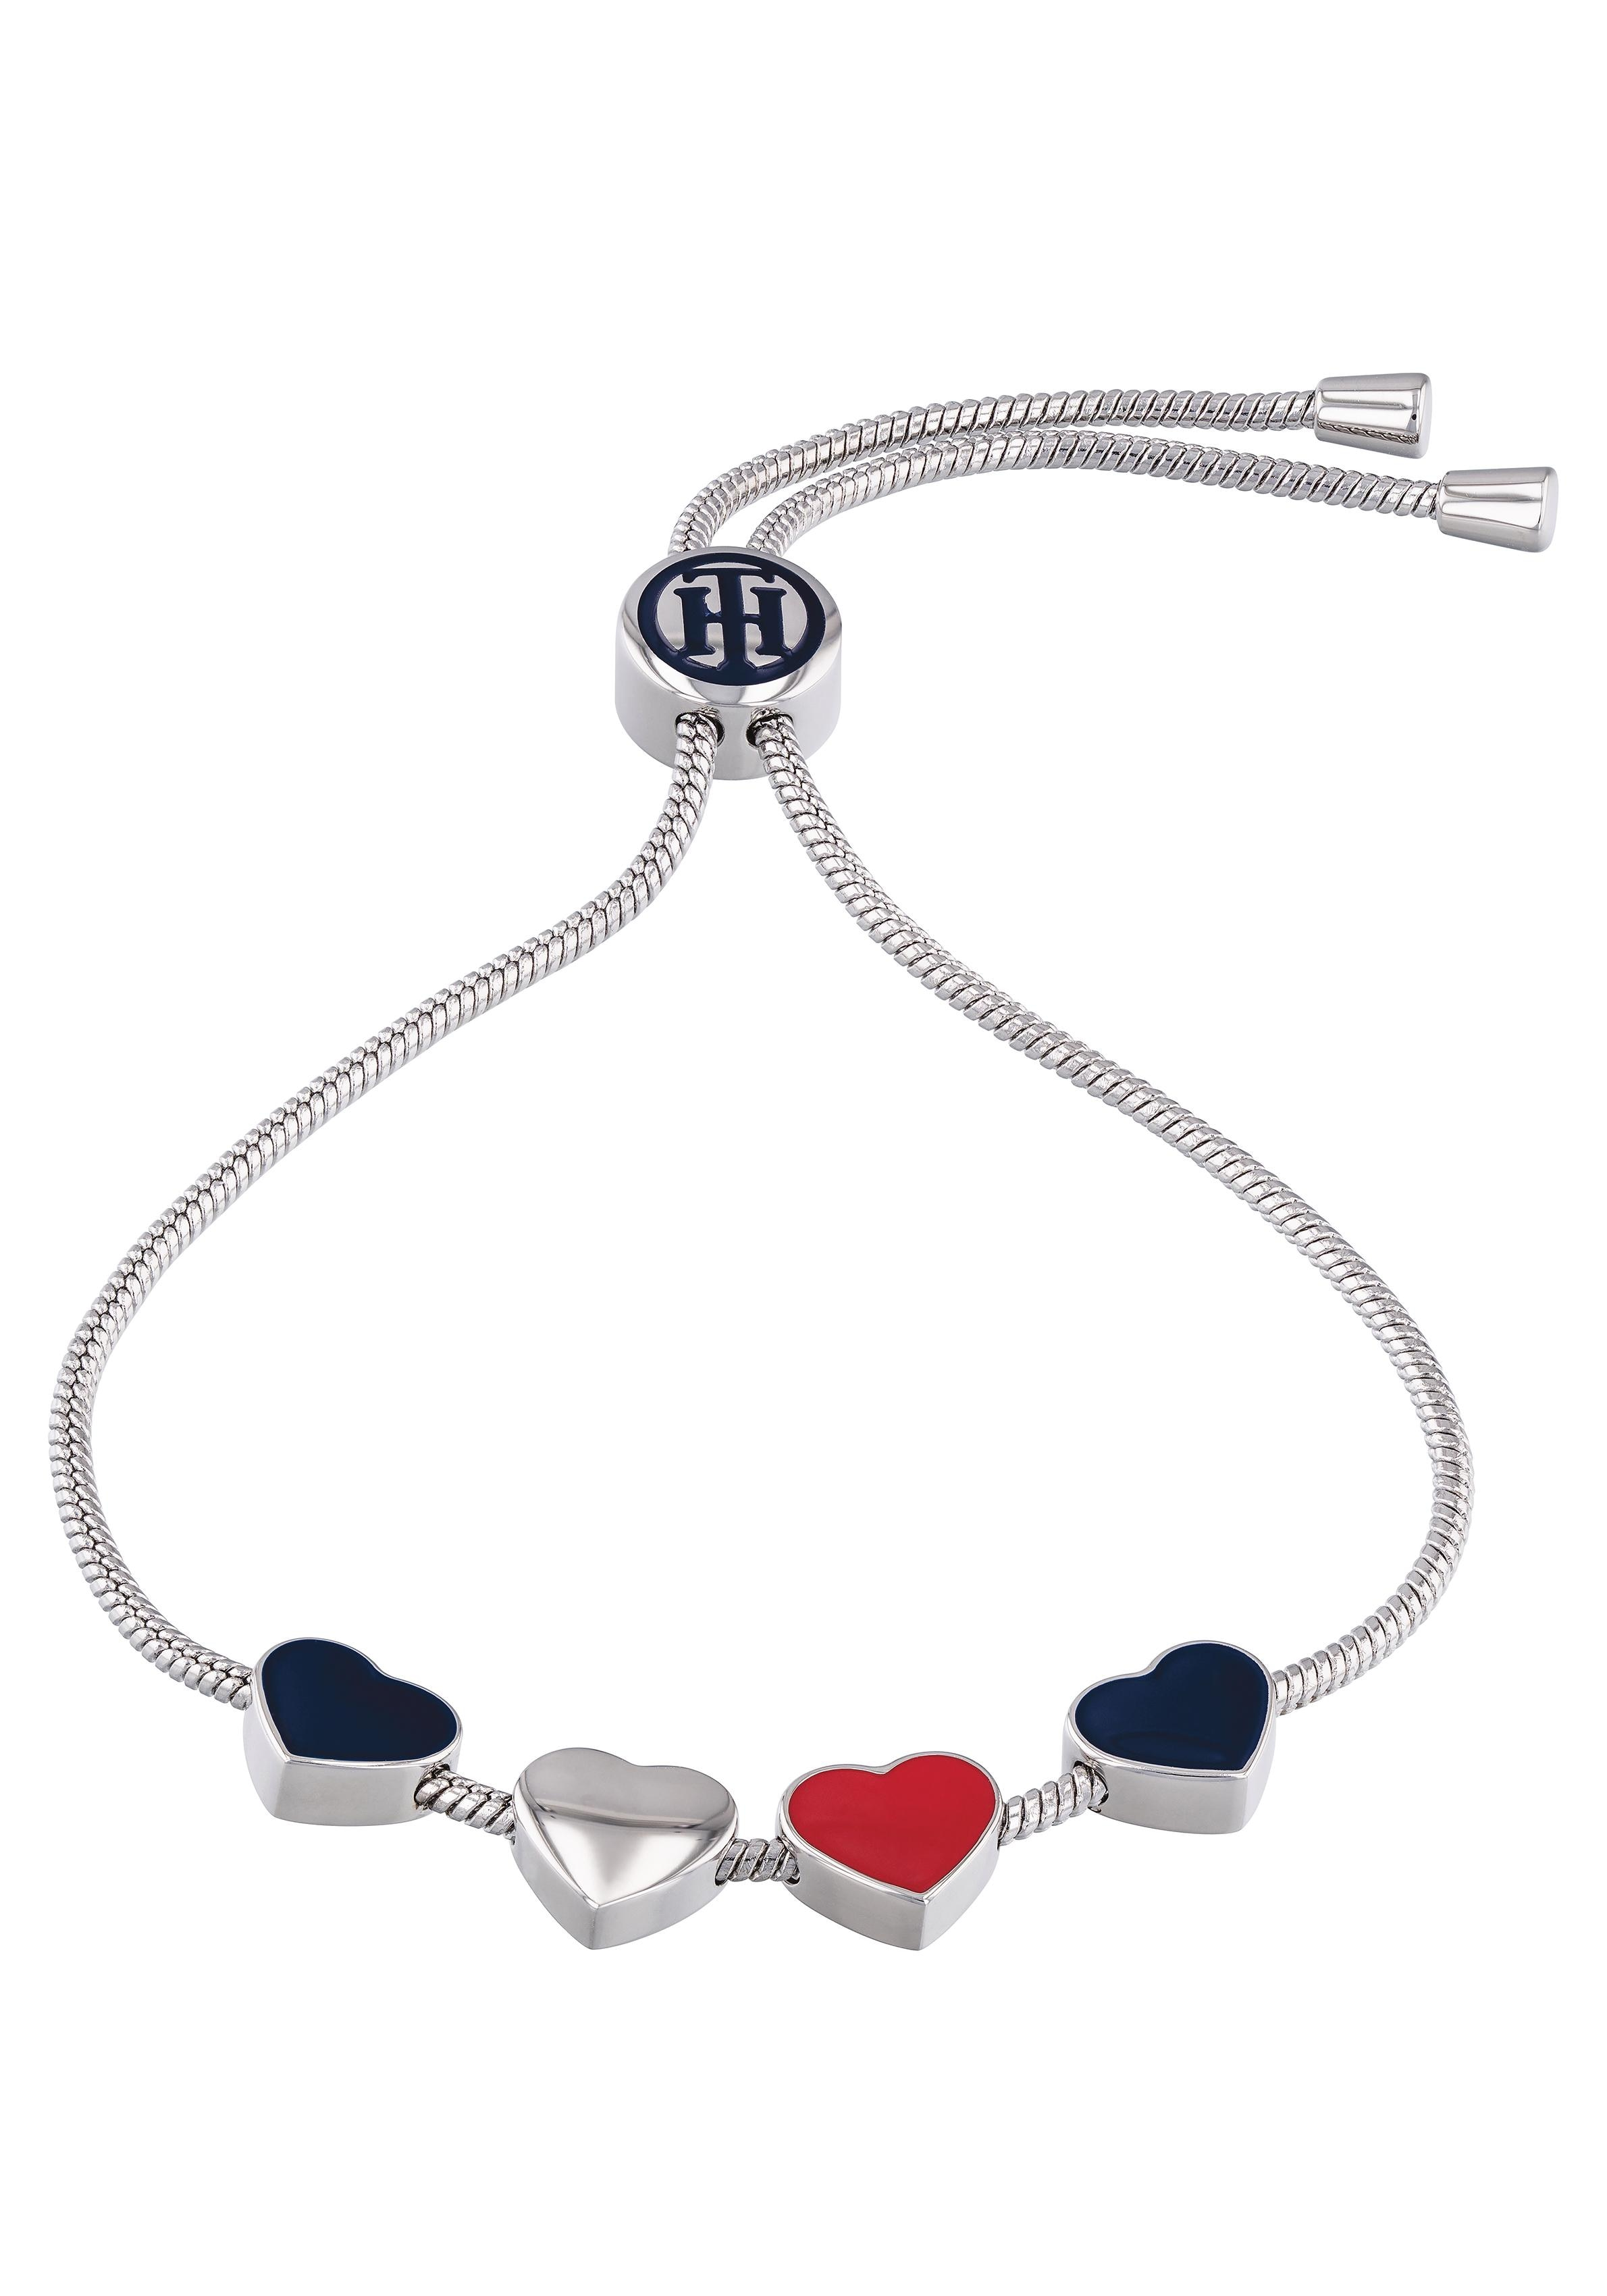 TOMMY HILFIGER Edelstahlarmband CASUAL CORE 2780120 | Schmuck > Armbänder > Edelstahlarmbänder | Tommy Hilfiger